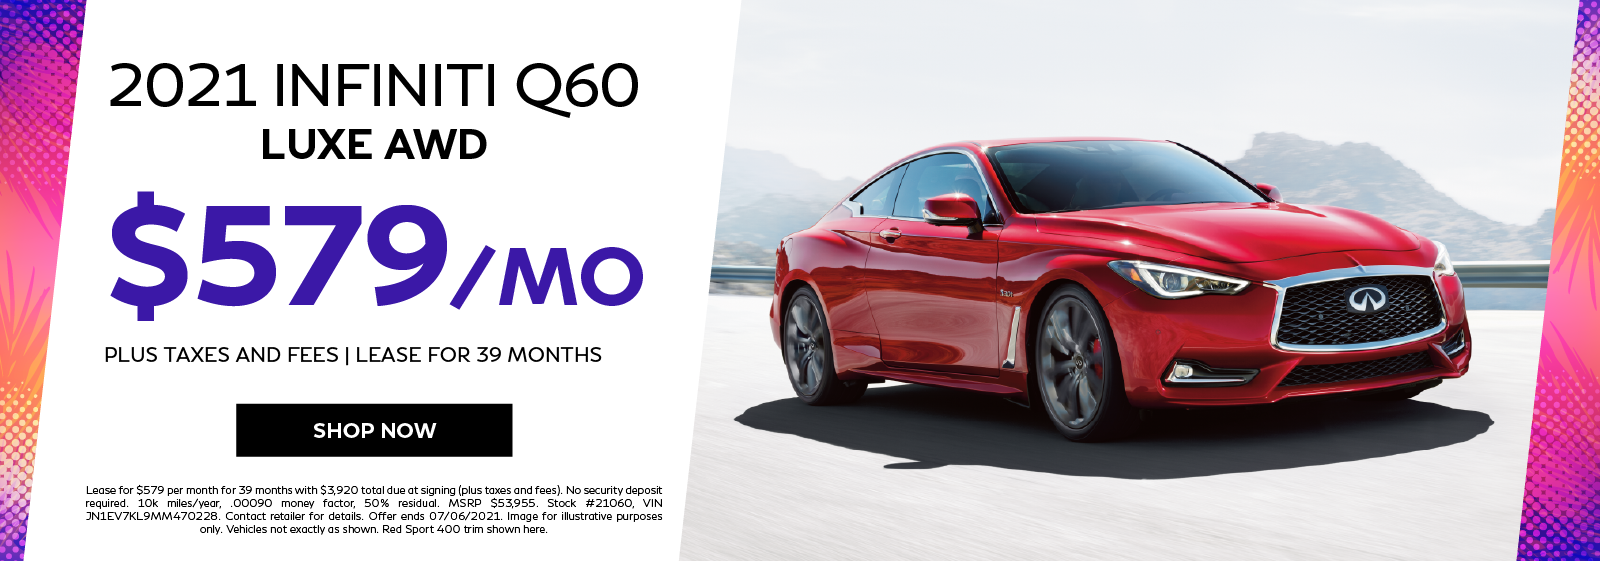 2021 INFINITI Q60 LUXE AWD Lease Offer. Click to shop now.